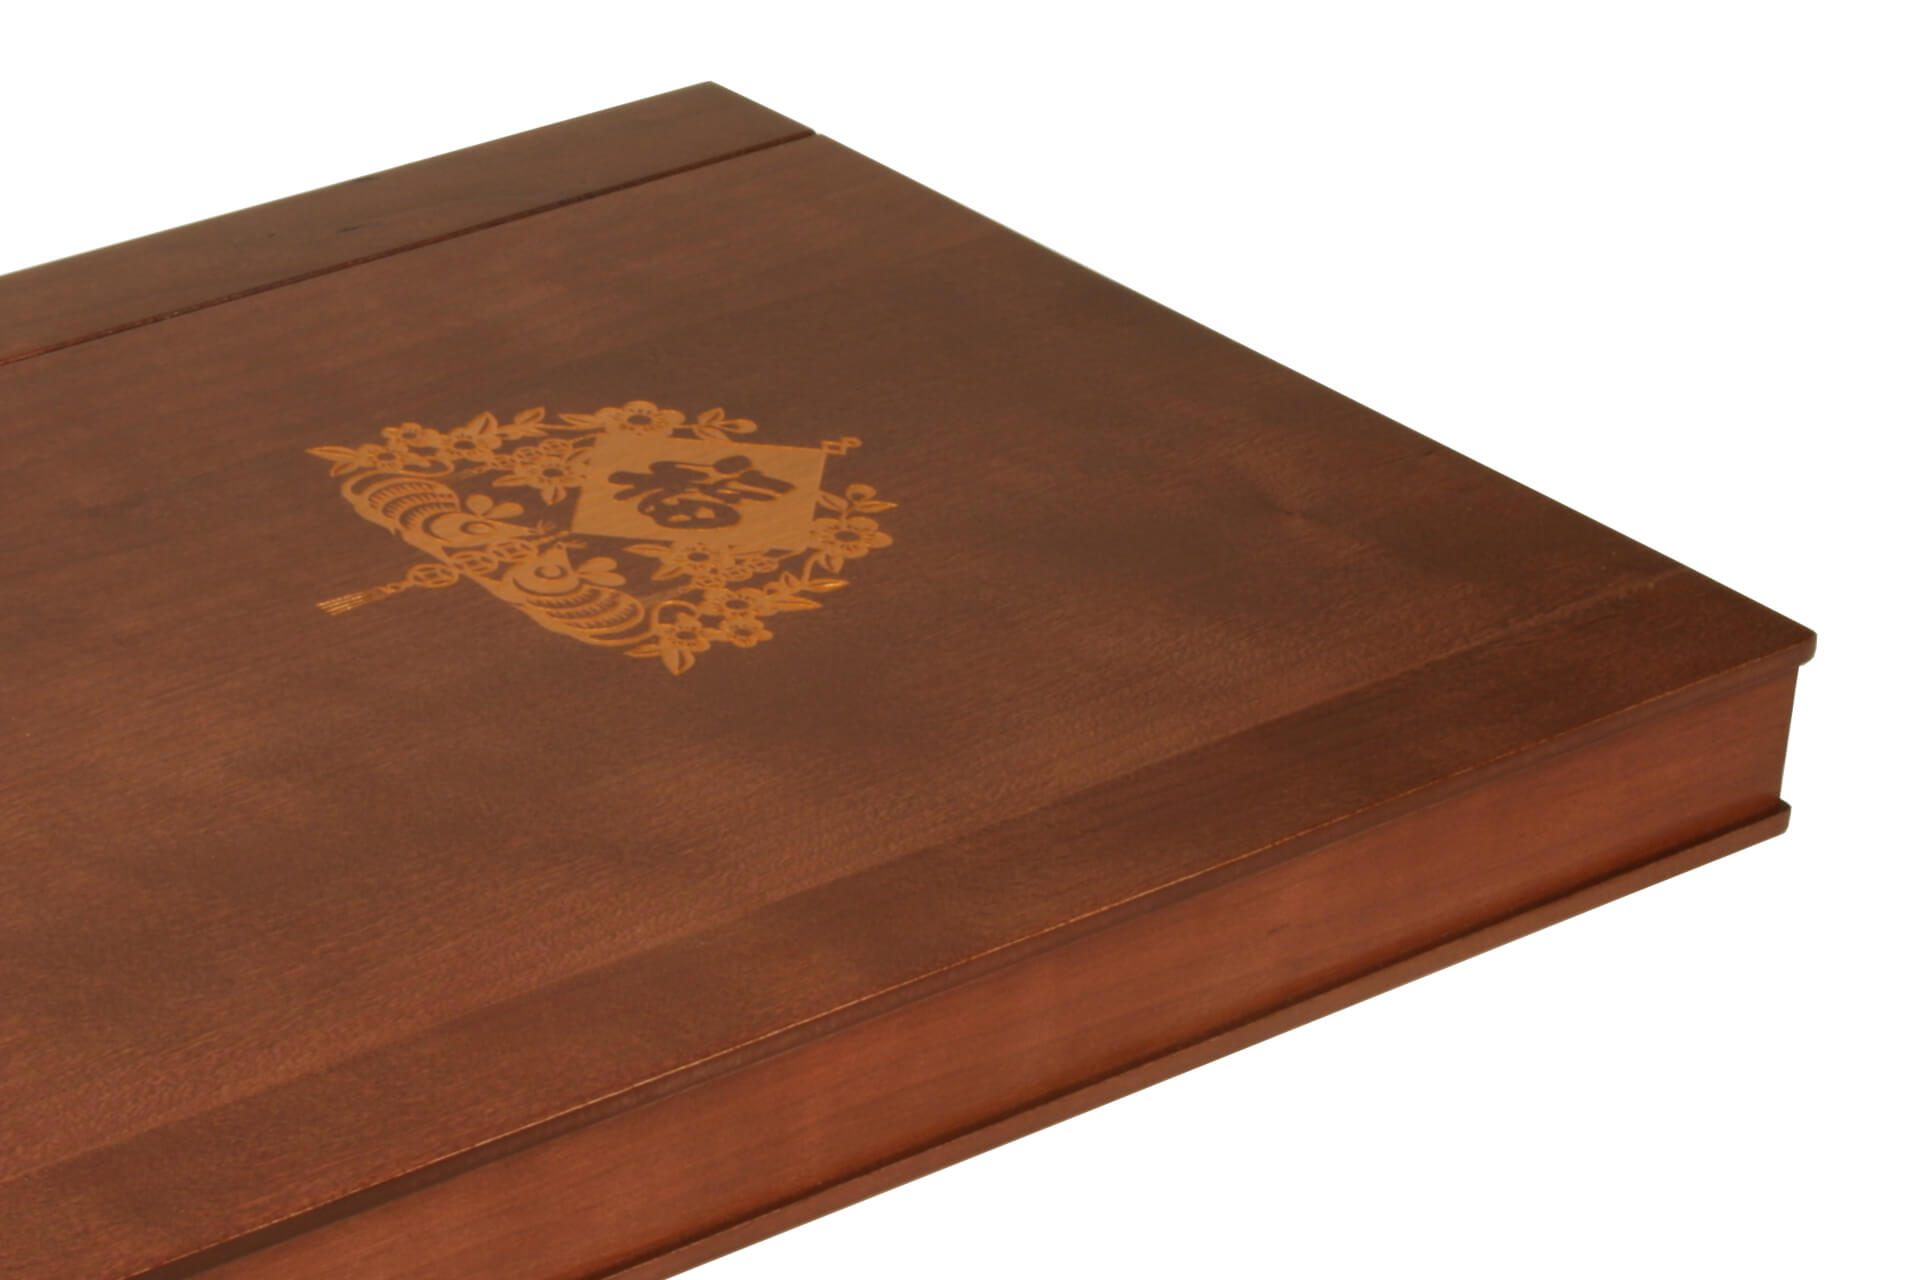 stylish wood room folder custom branded for exclusive hotels